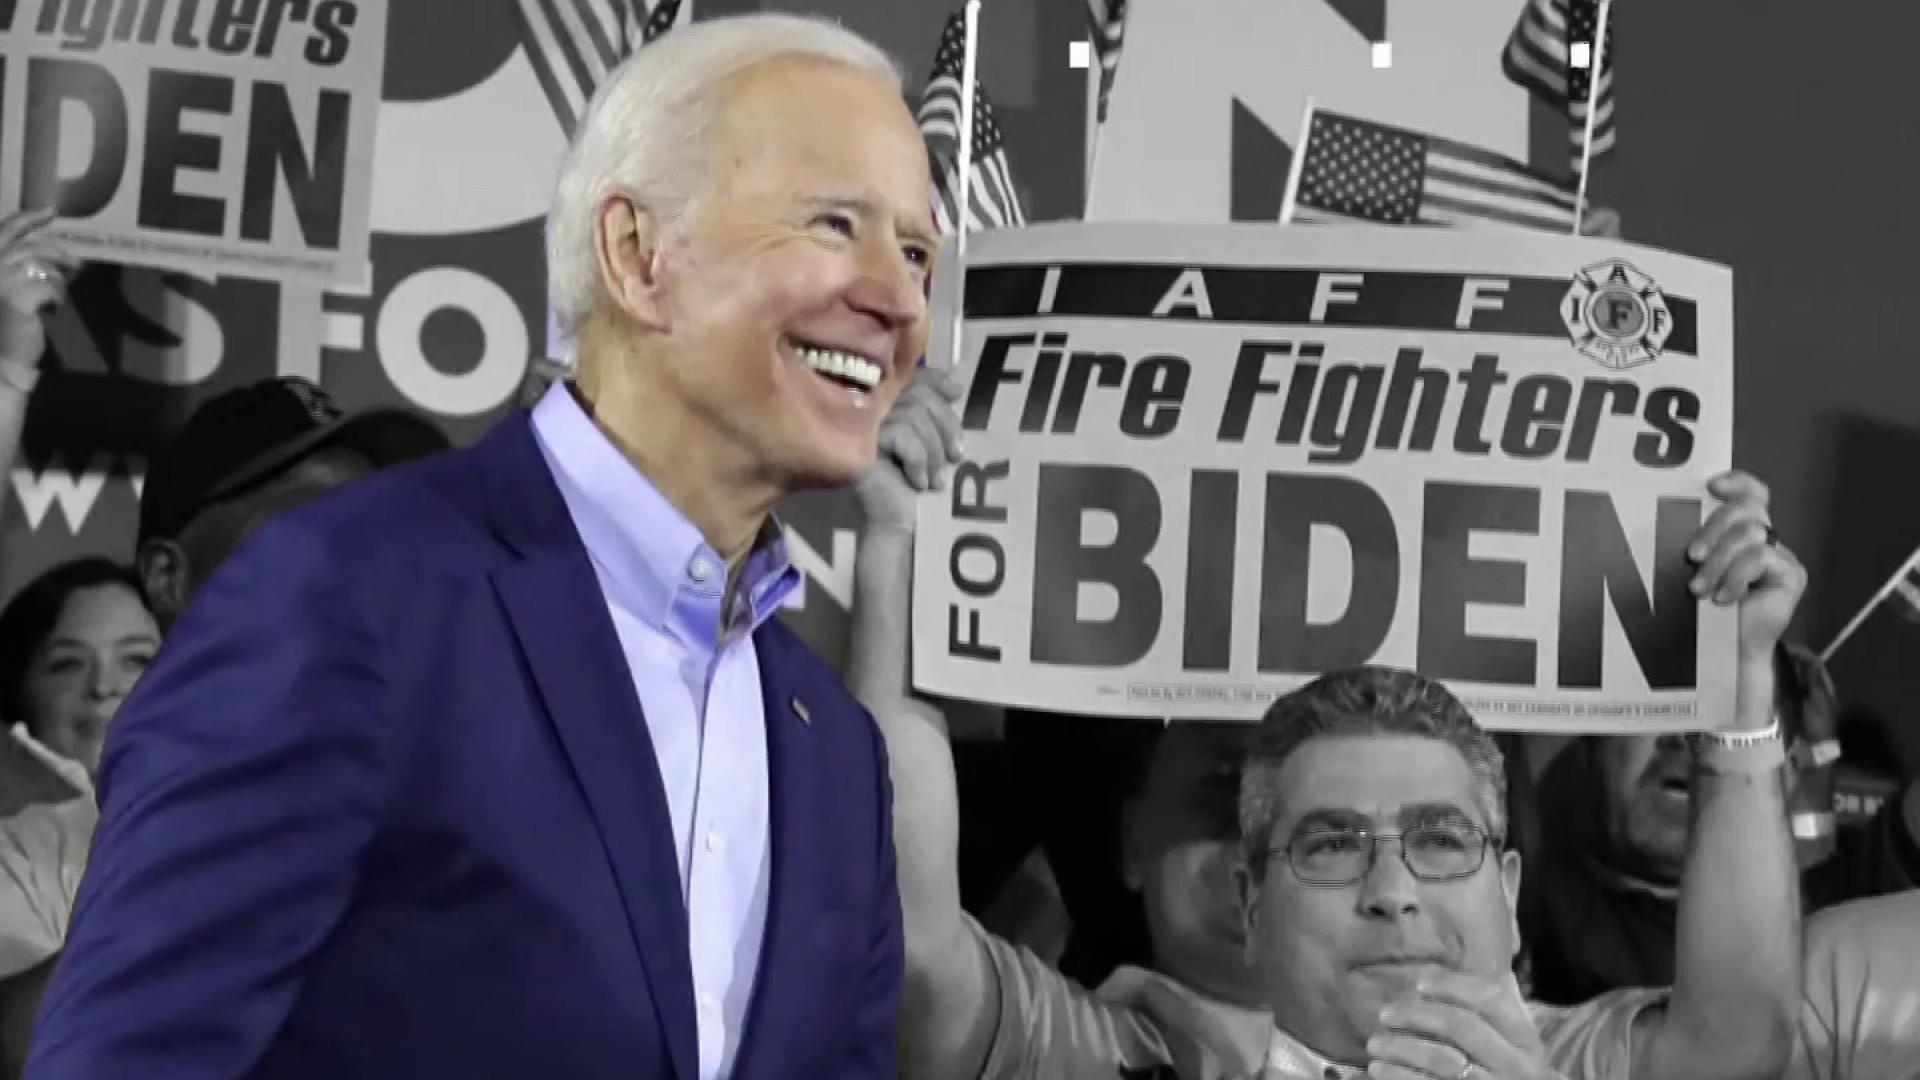 Trump is 'taking the bait' as Biden kicks off his 2020 campaign